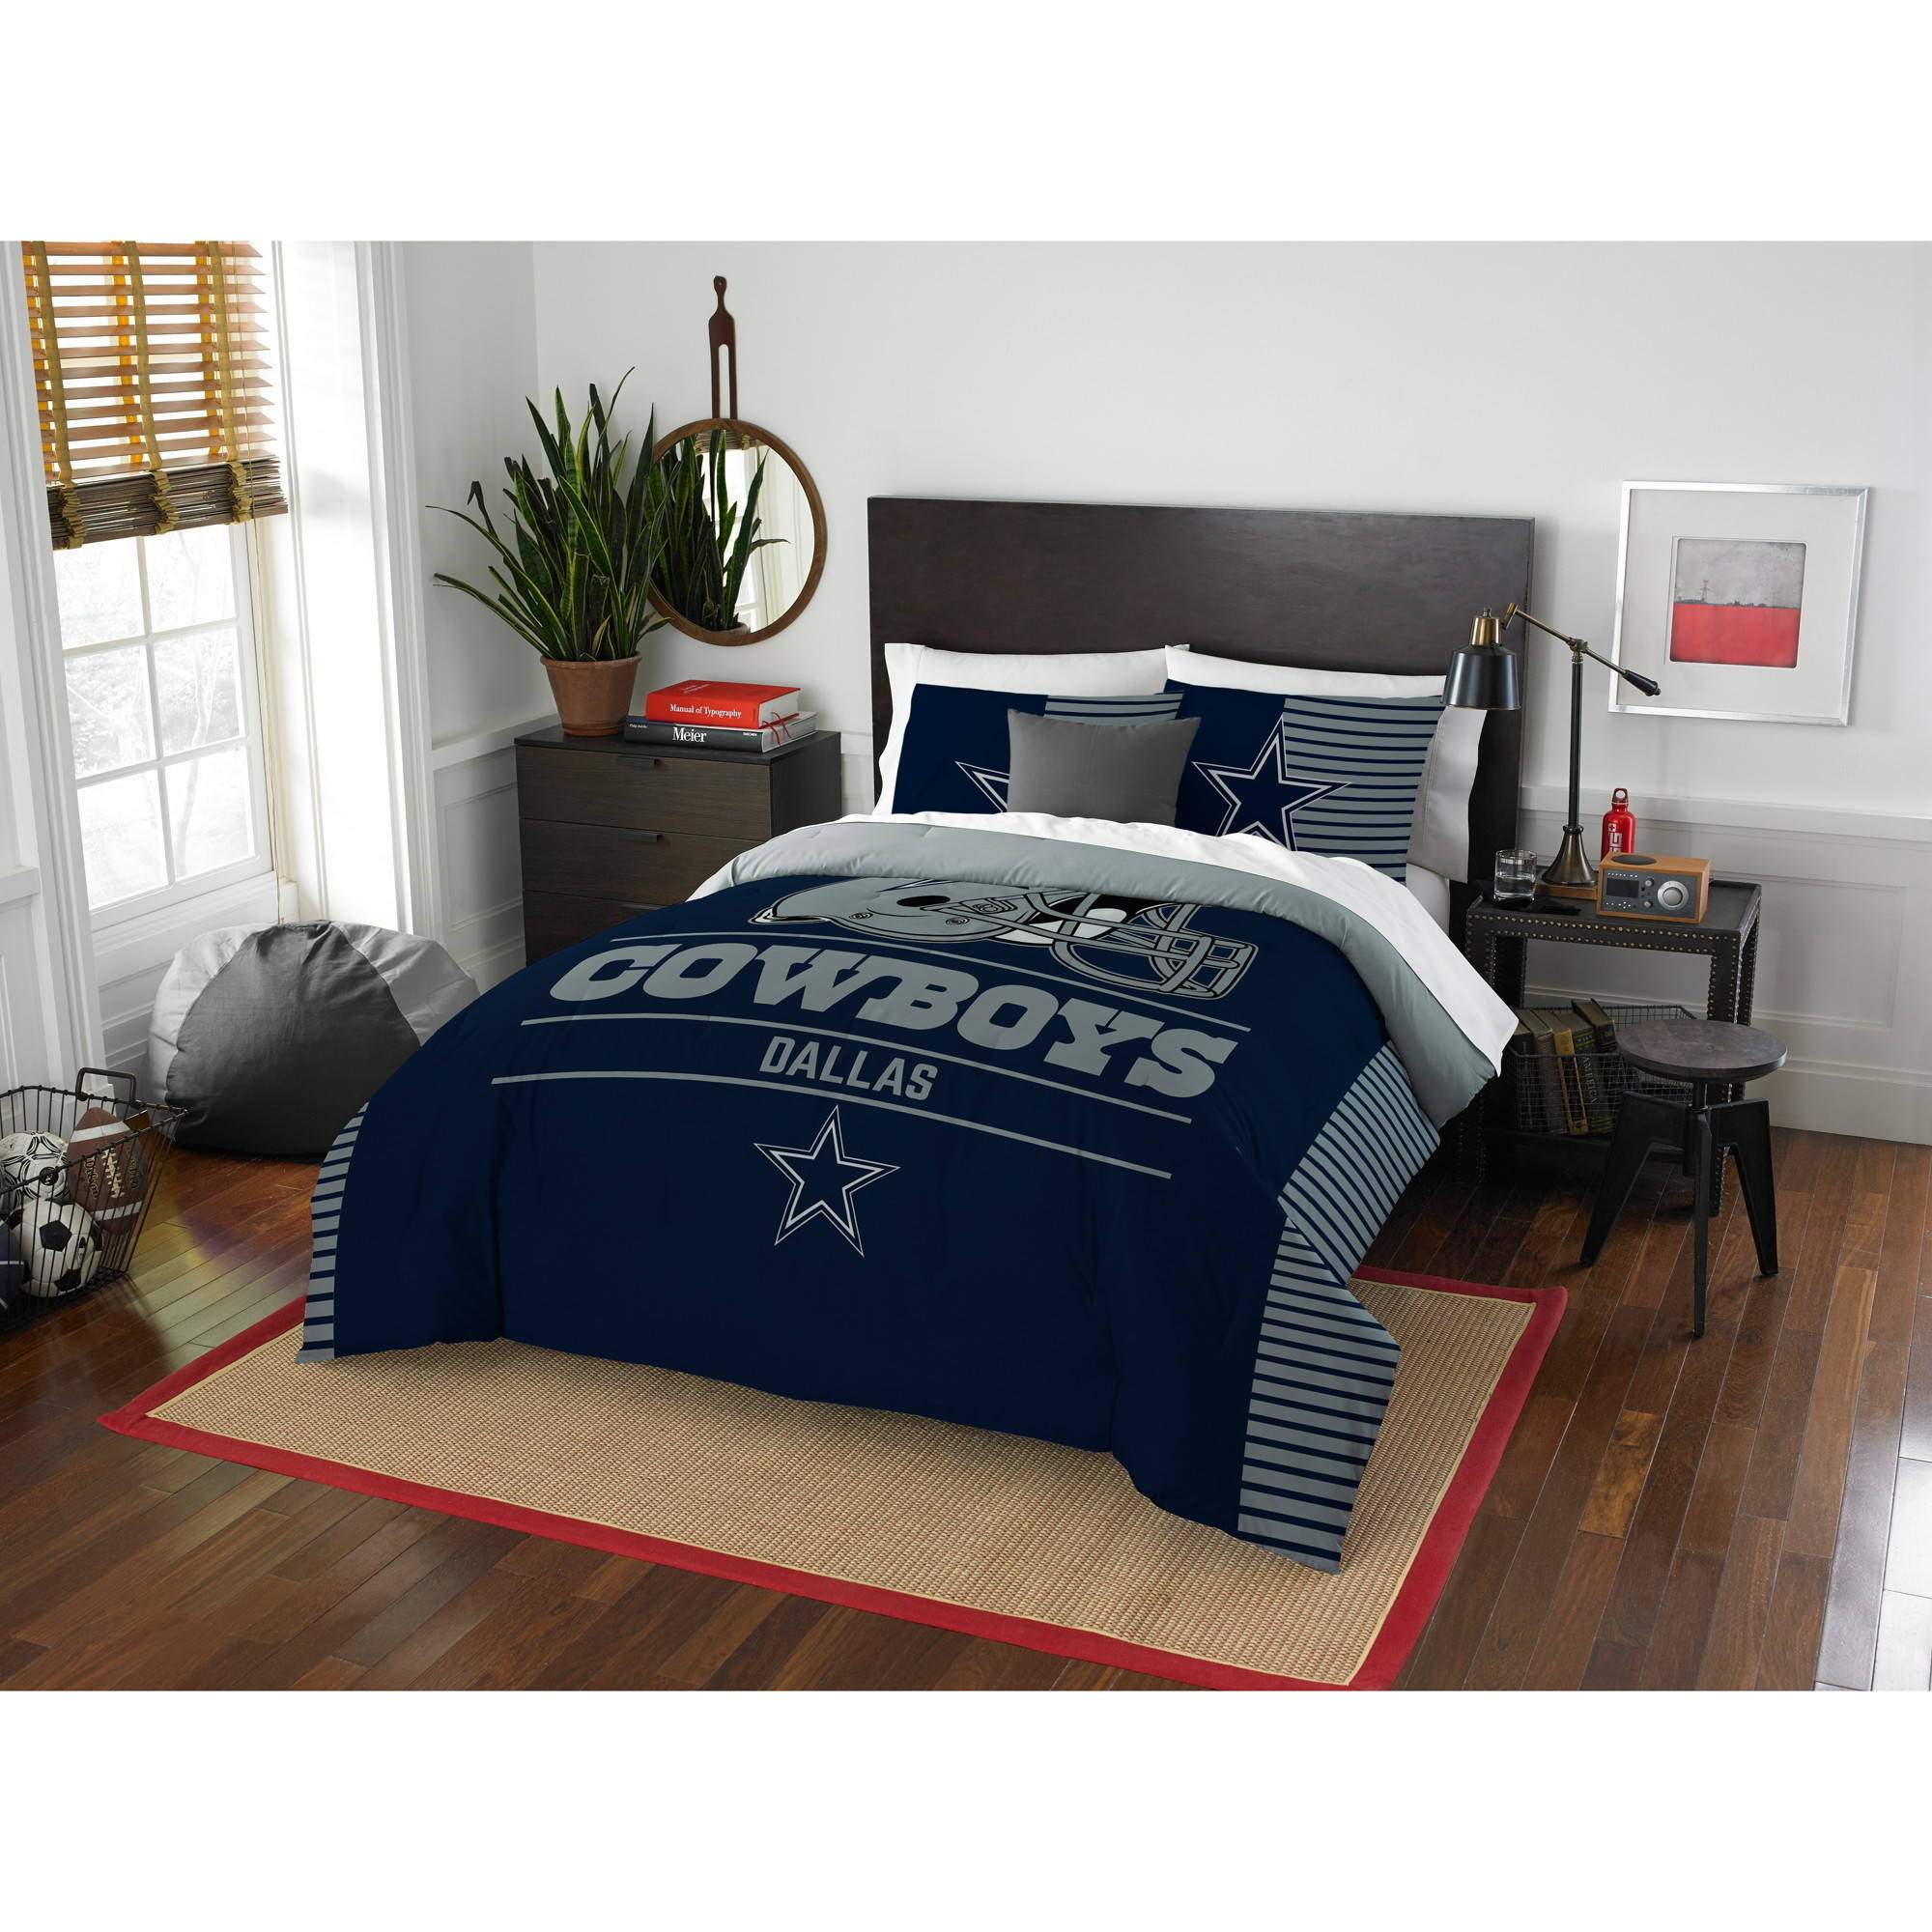 """NFL Dallas Cowboys """"Draft"""" Bedding Comforter Set by The Northwest Company"""